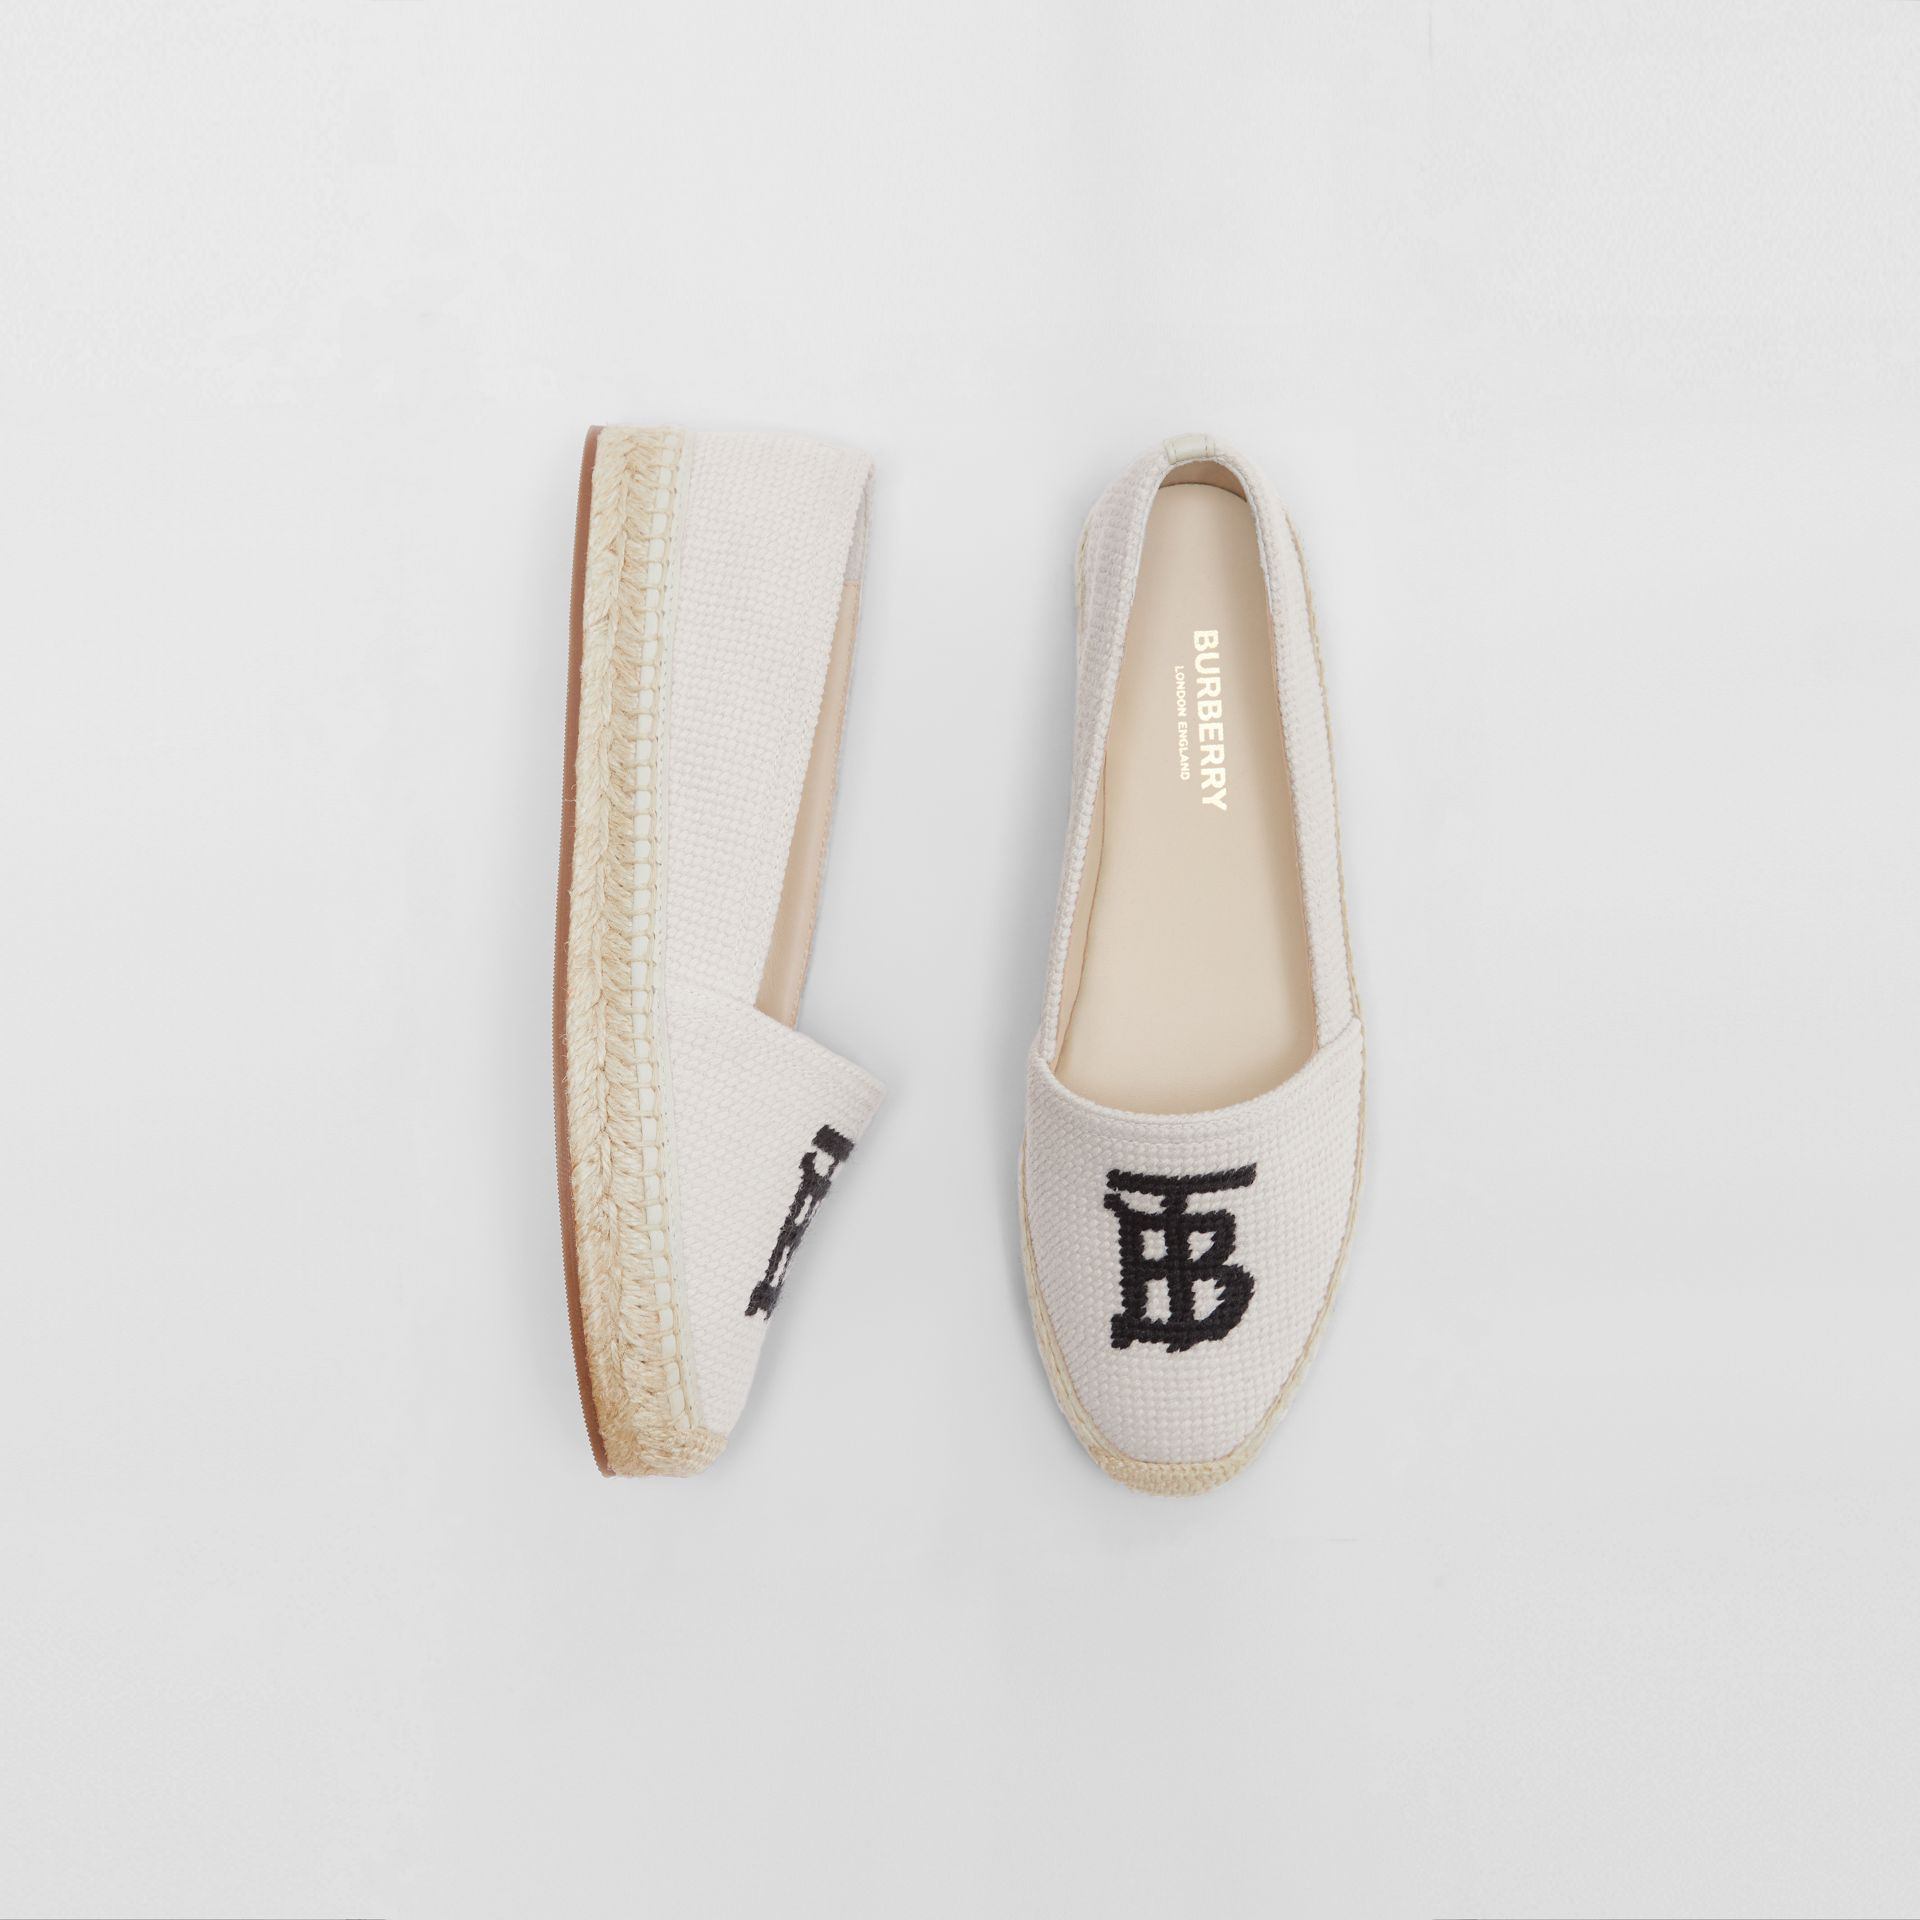 Monogram Motif Cotton and Leather Espadrilles in Ecru/black - Women | Burberry United States - gallery image 0